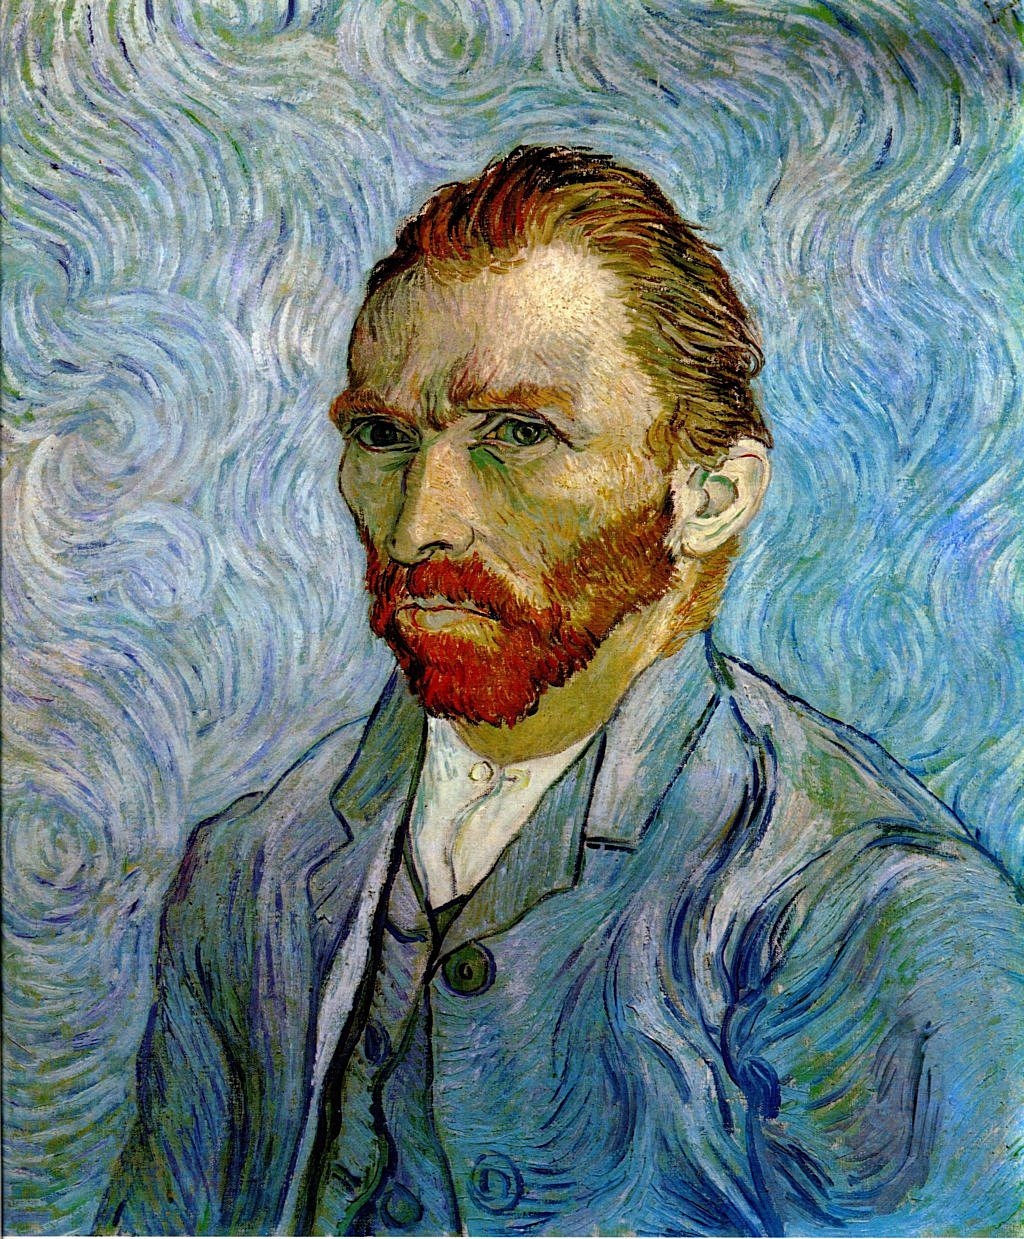 Vincent.... My first major artistic influence, and